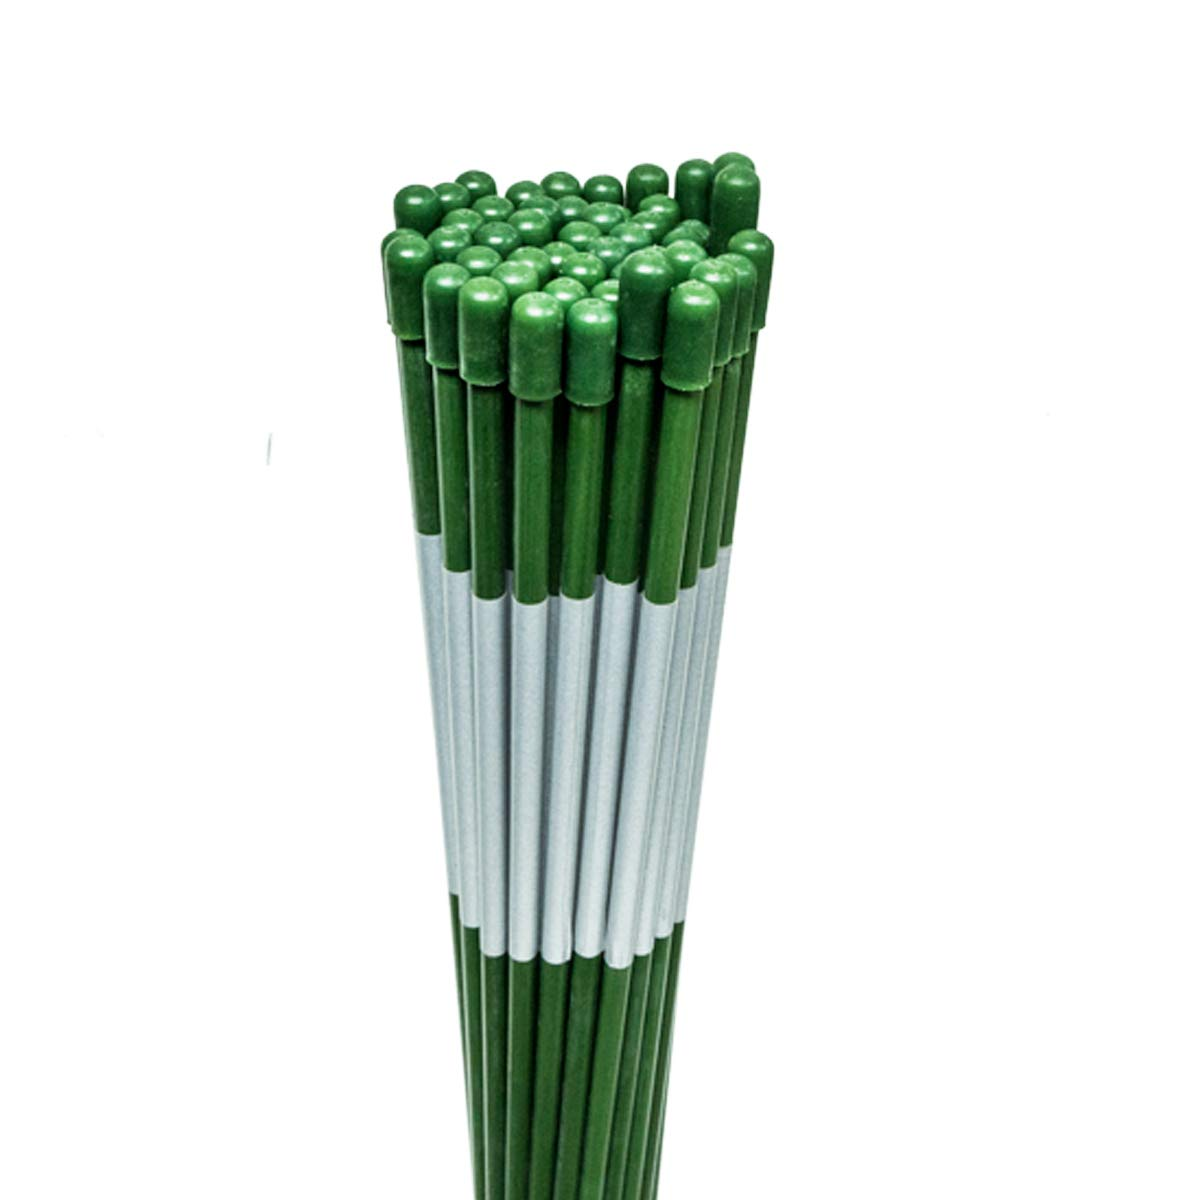 50PK 48'' Long Reflective Driveway Markers Snow Stakes Green 5/16''